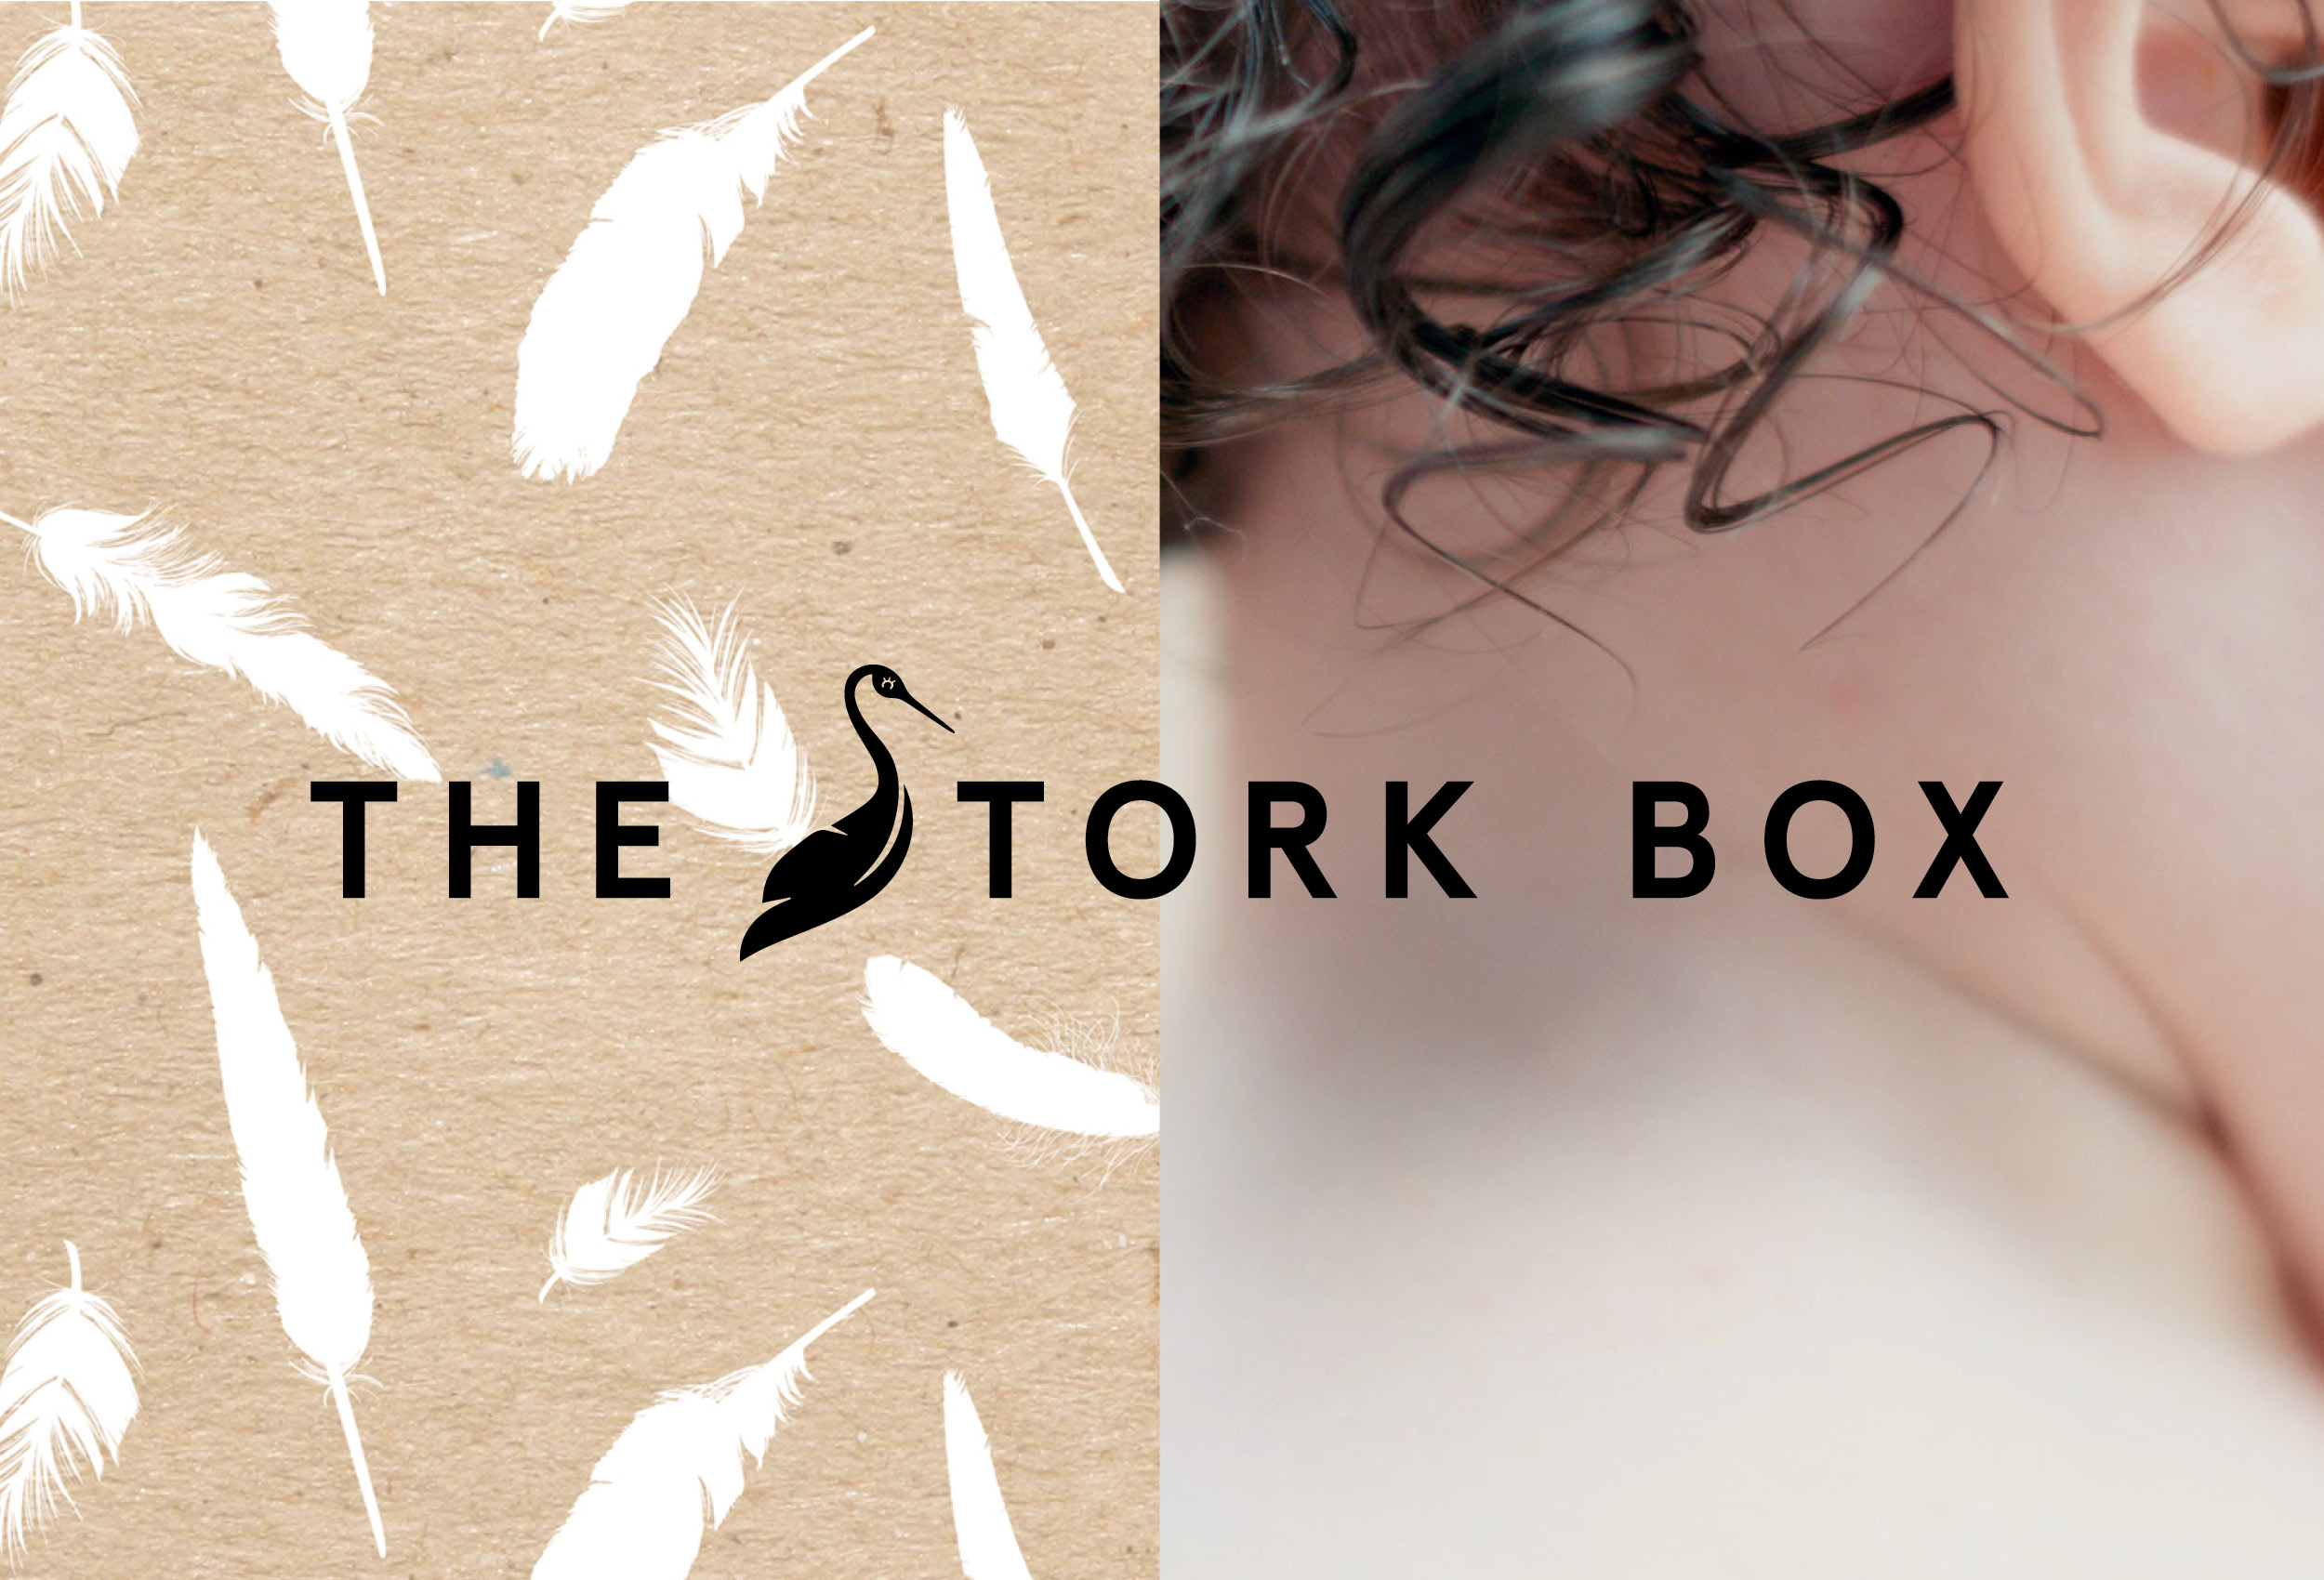 Cover image: The Stork Box Rebrand